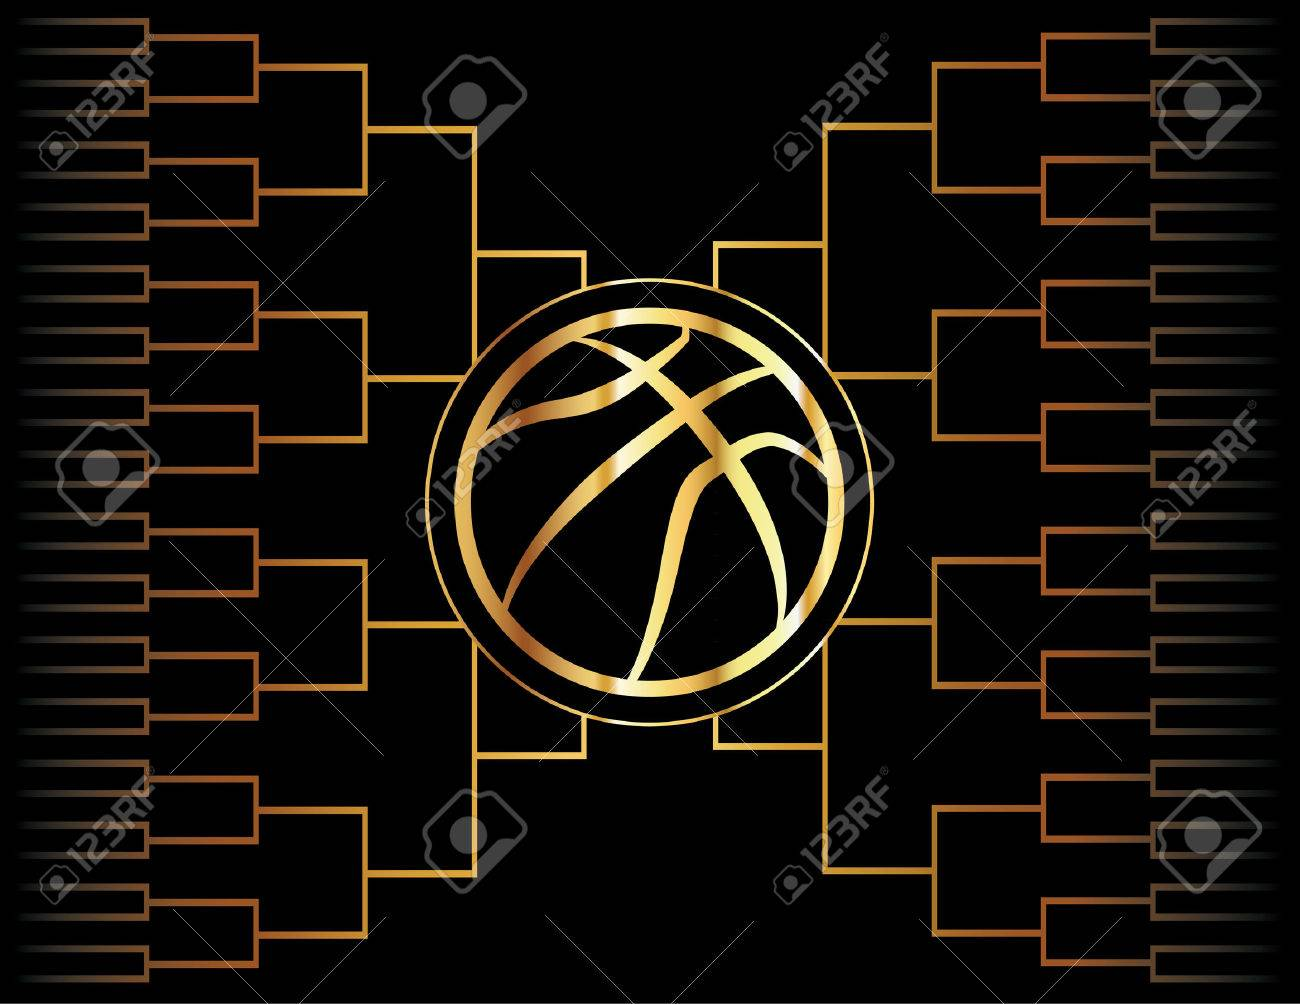 A golden basketball icon over a gold colored tournament bracket. Vector EPS 10 available. - 52277422